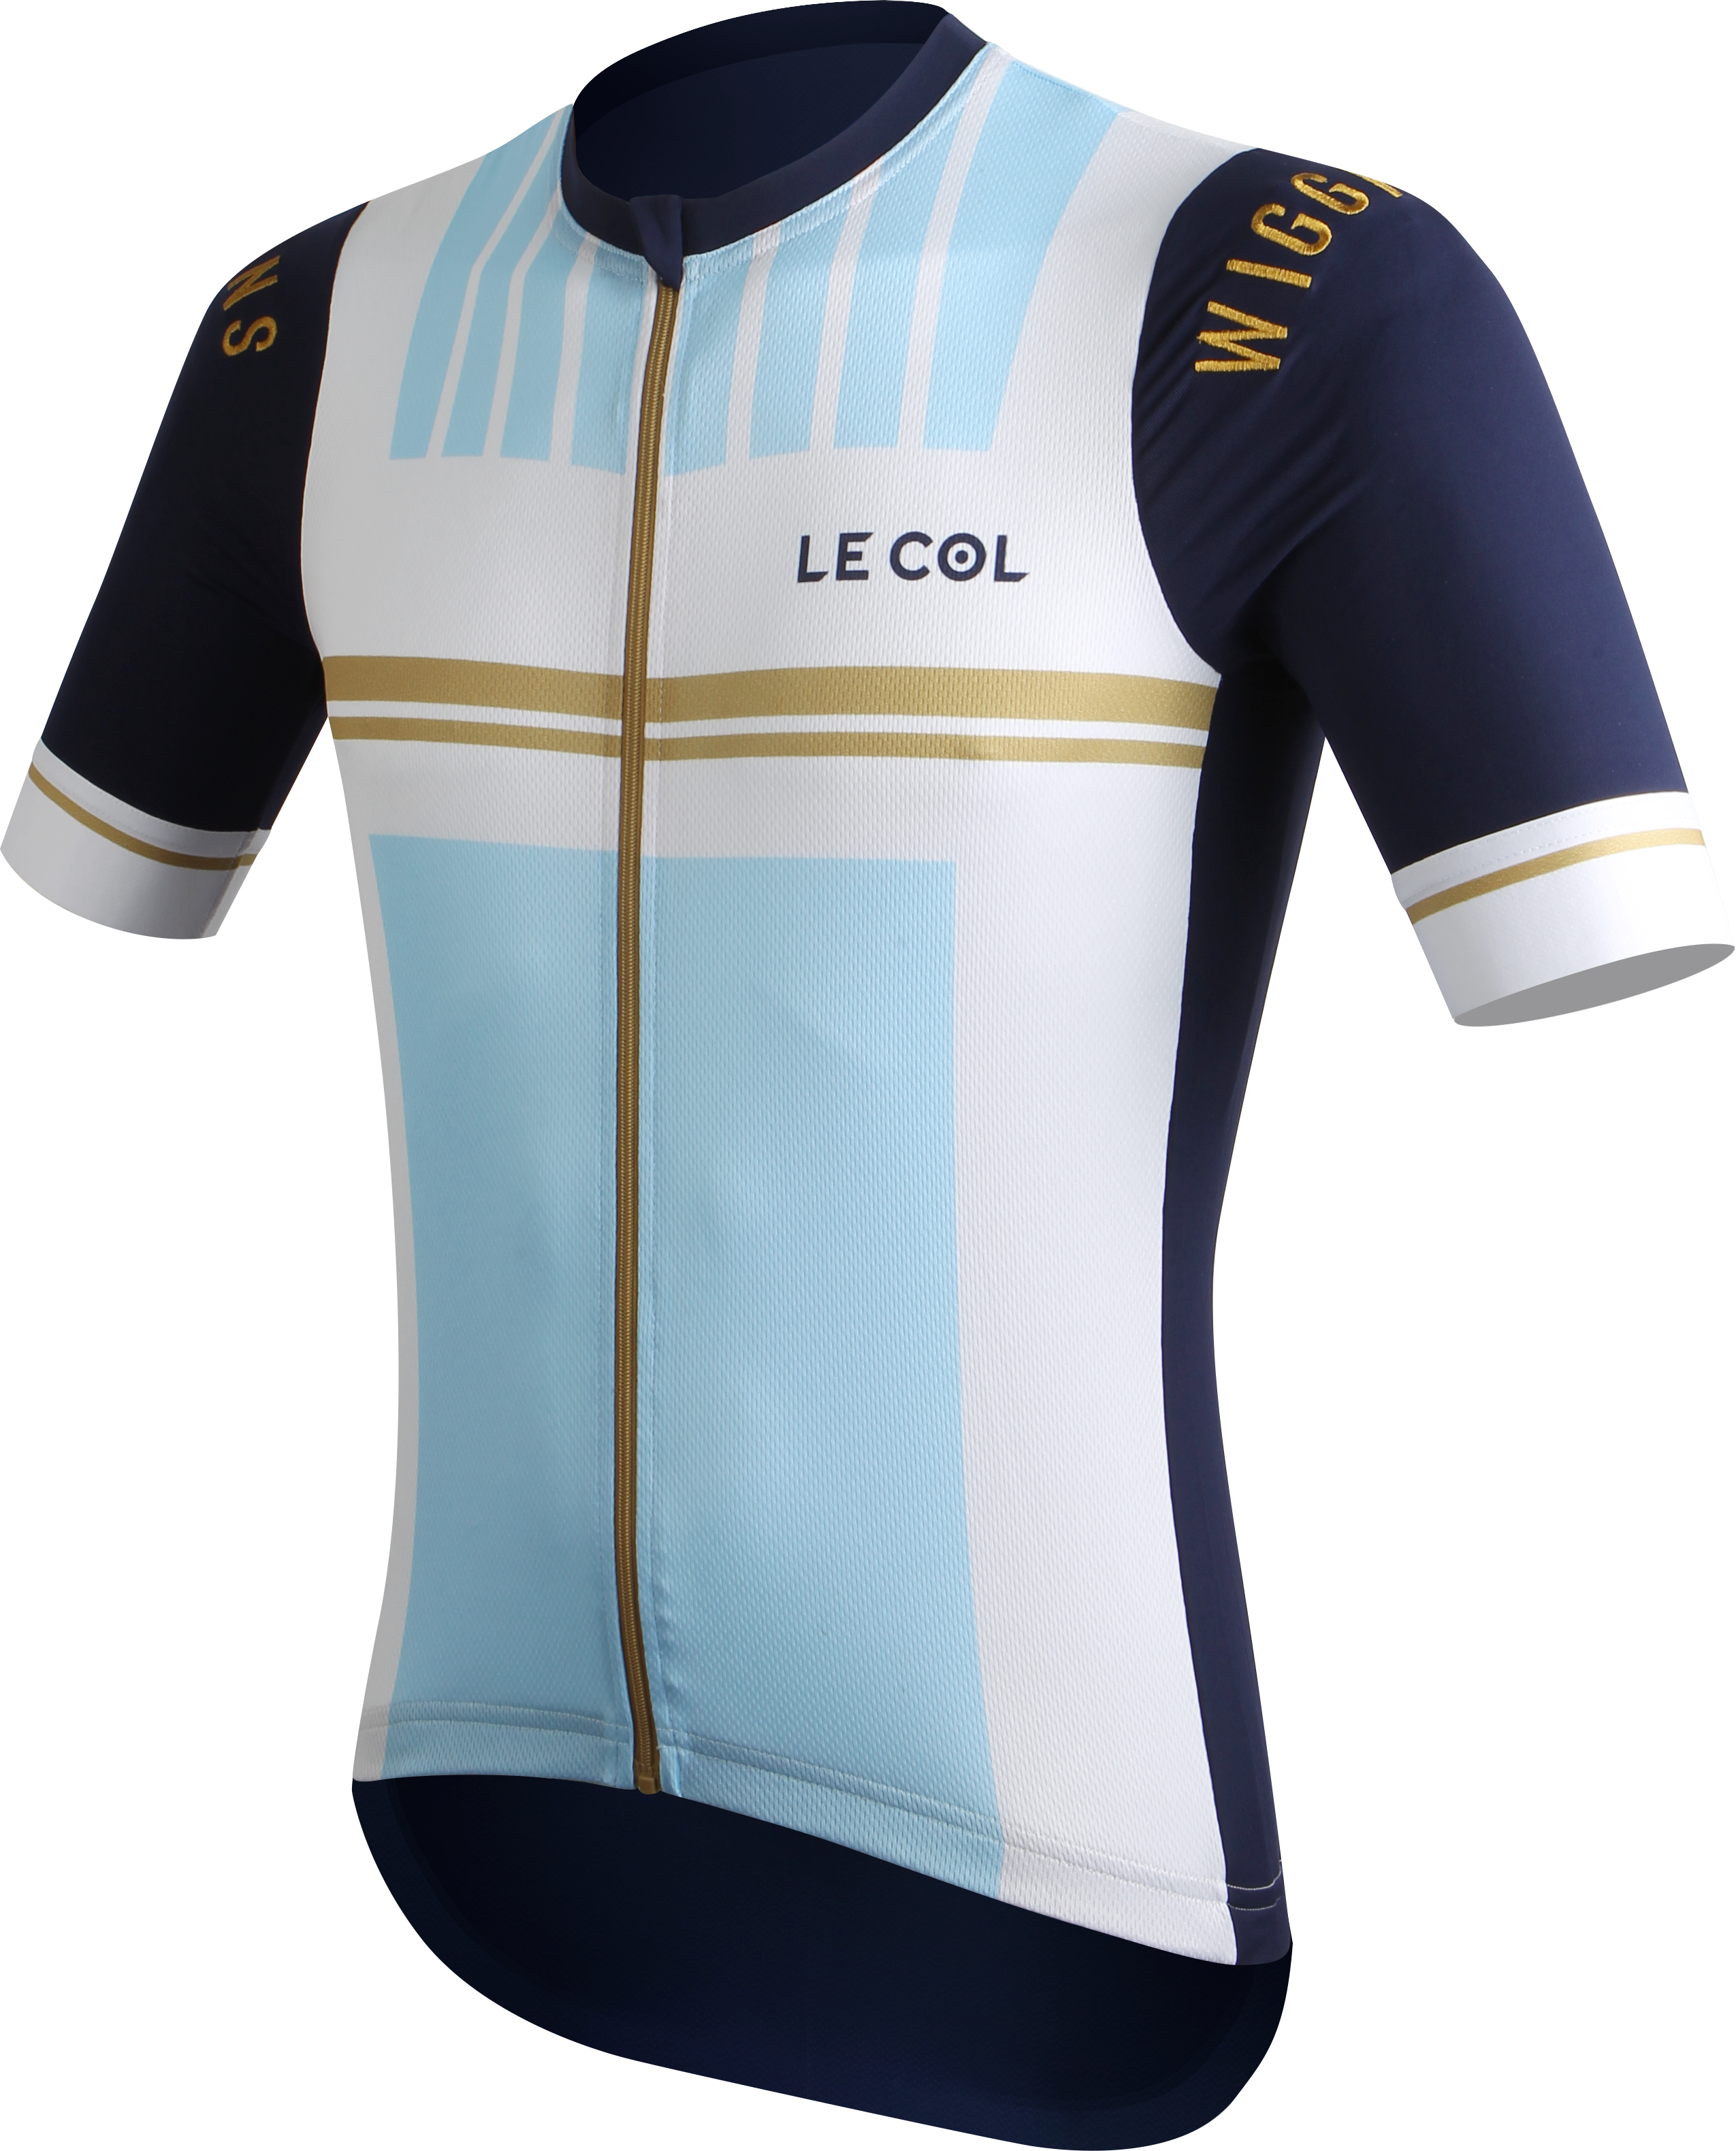 Le Col by Wiggins   PRO Mens Cycling Jersey   White   Light Blue - 700 210b65dfc